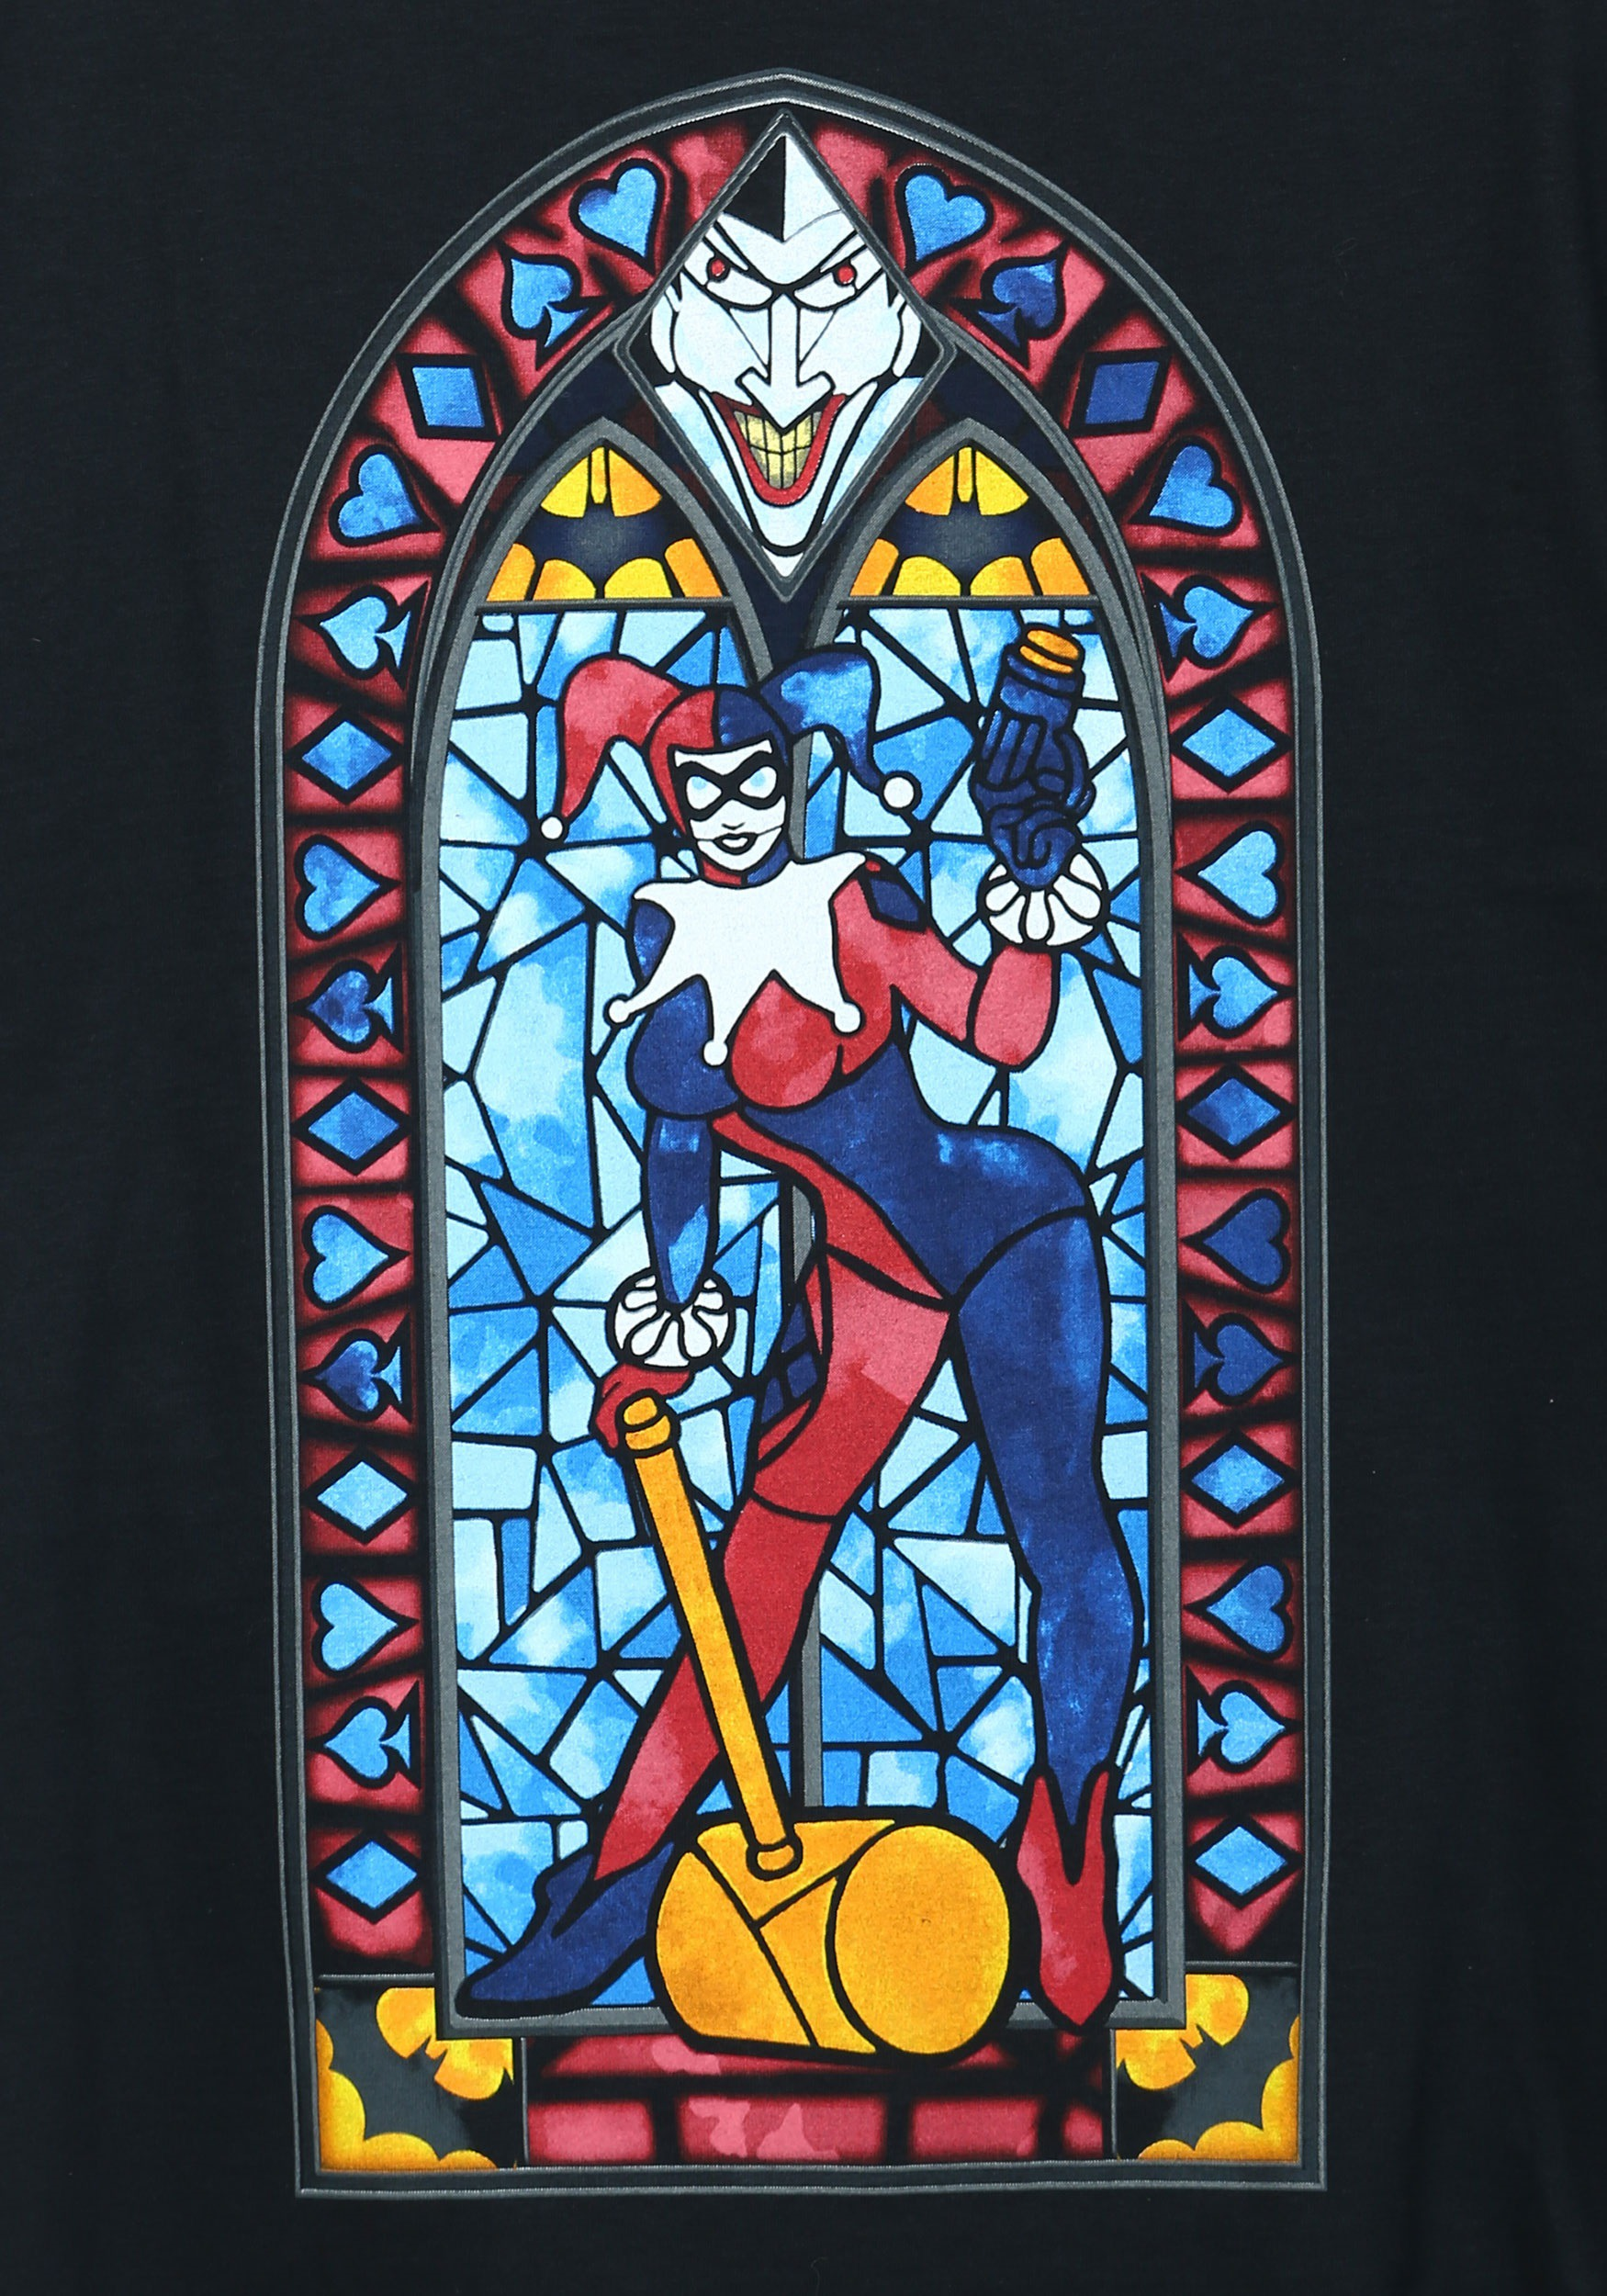 harley quinn stained glass mens t shirt. Black Bedroom Furniture Sets. Home Design Ideas